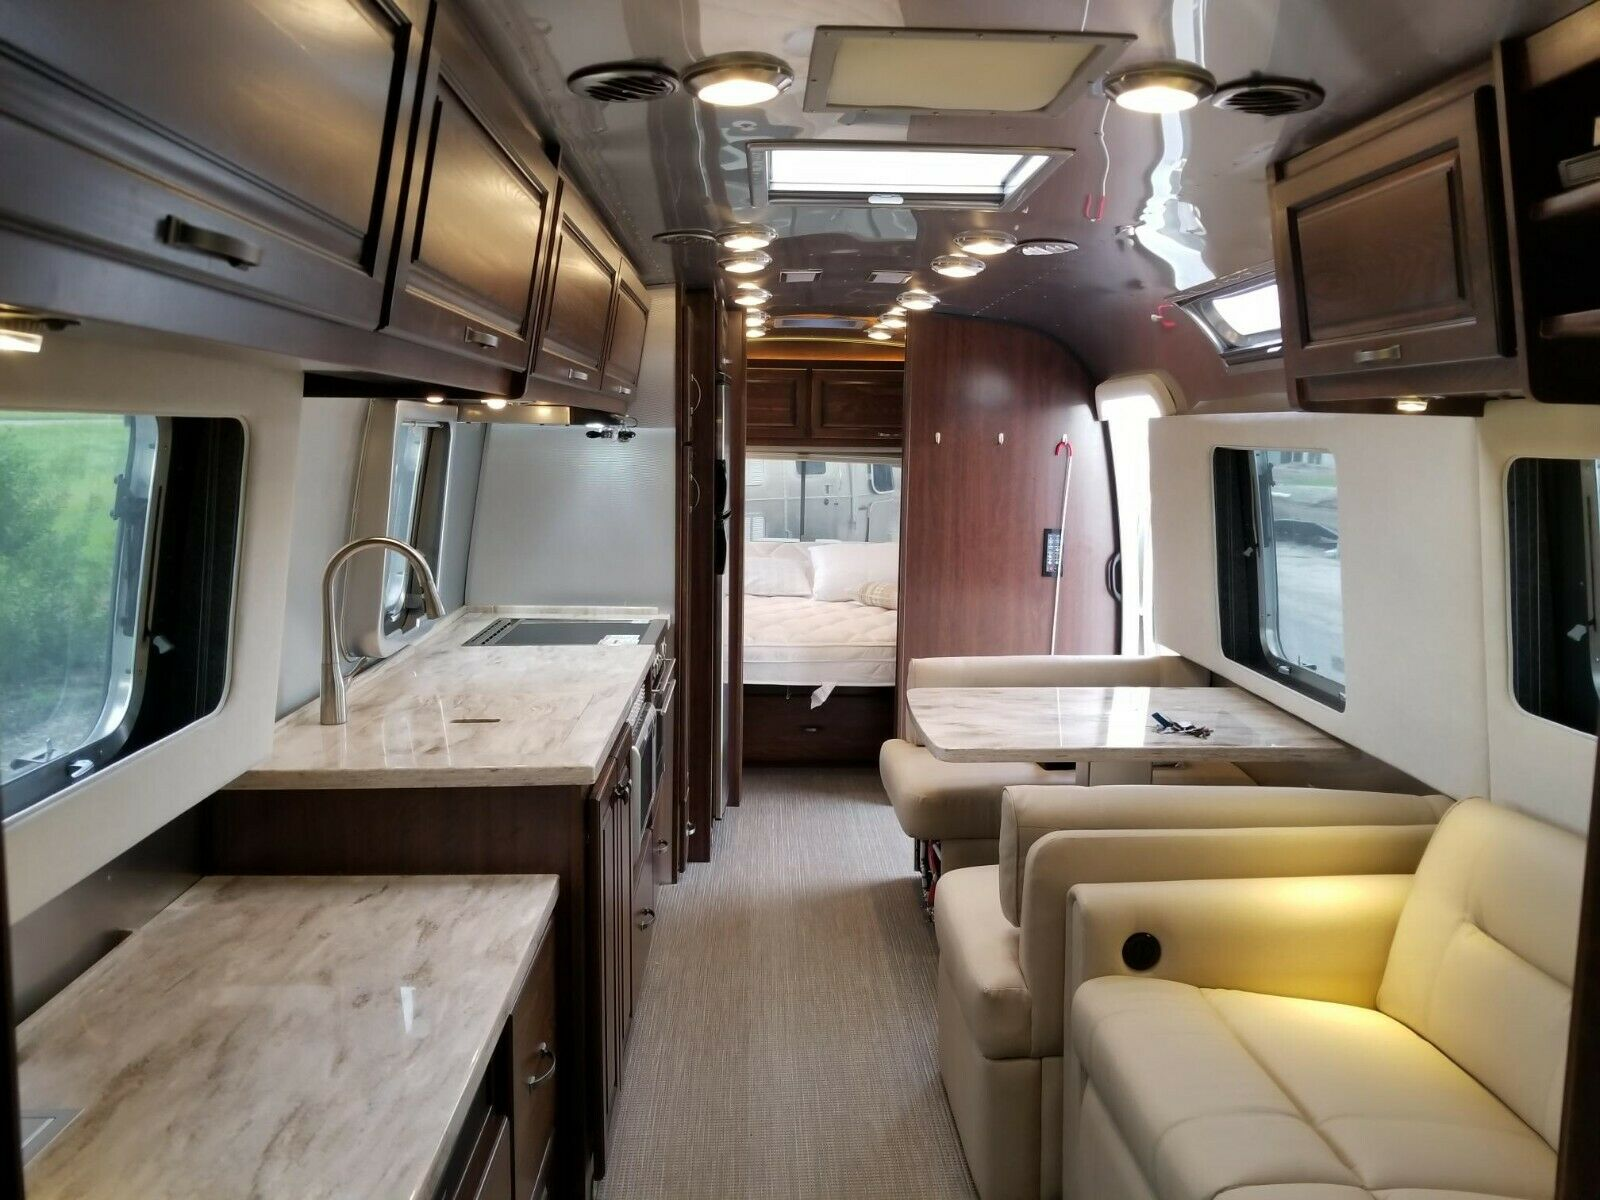 Meticulously maintained 2018 Airstream Classic 33FB camper